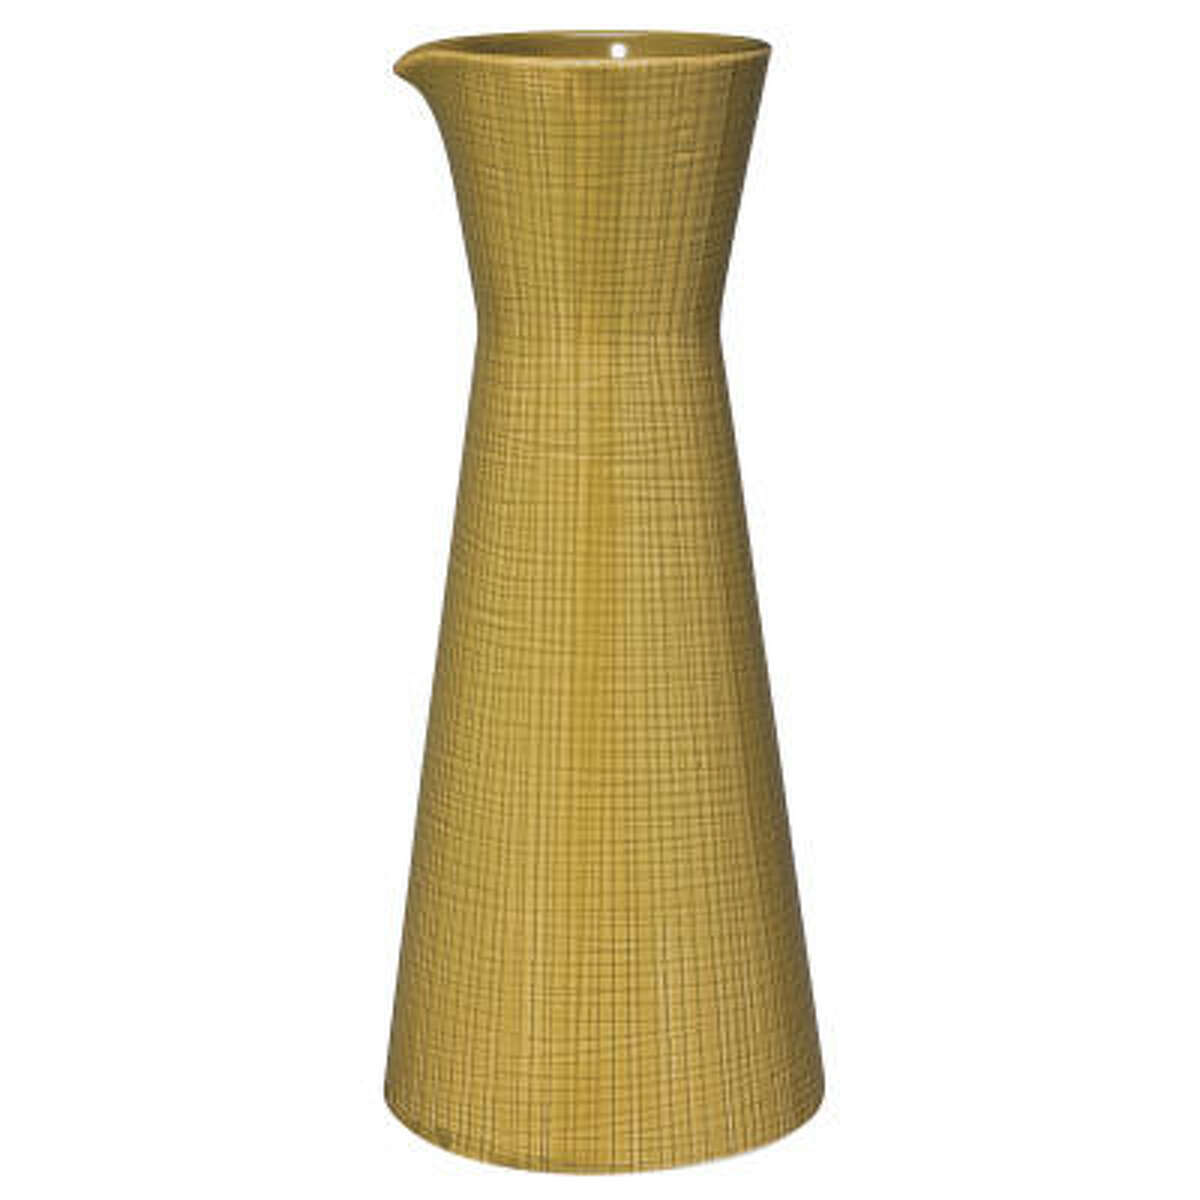 From Orla Kiely's new home collection for Target.